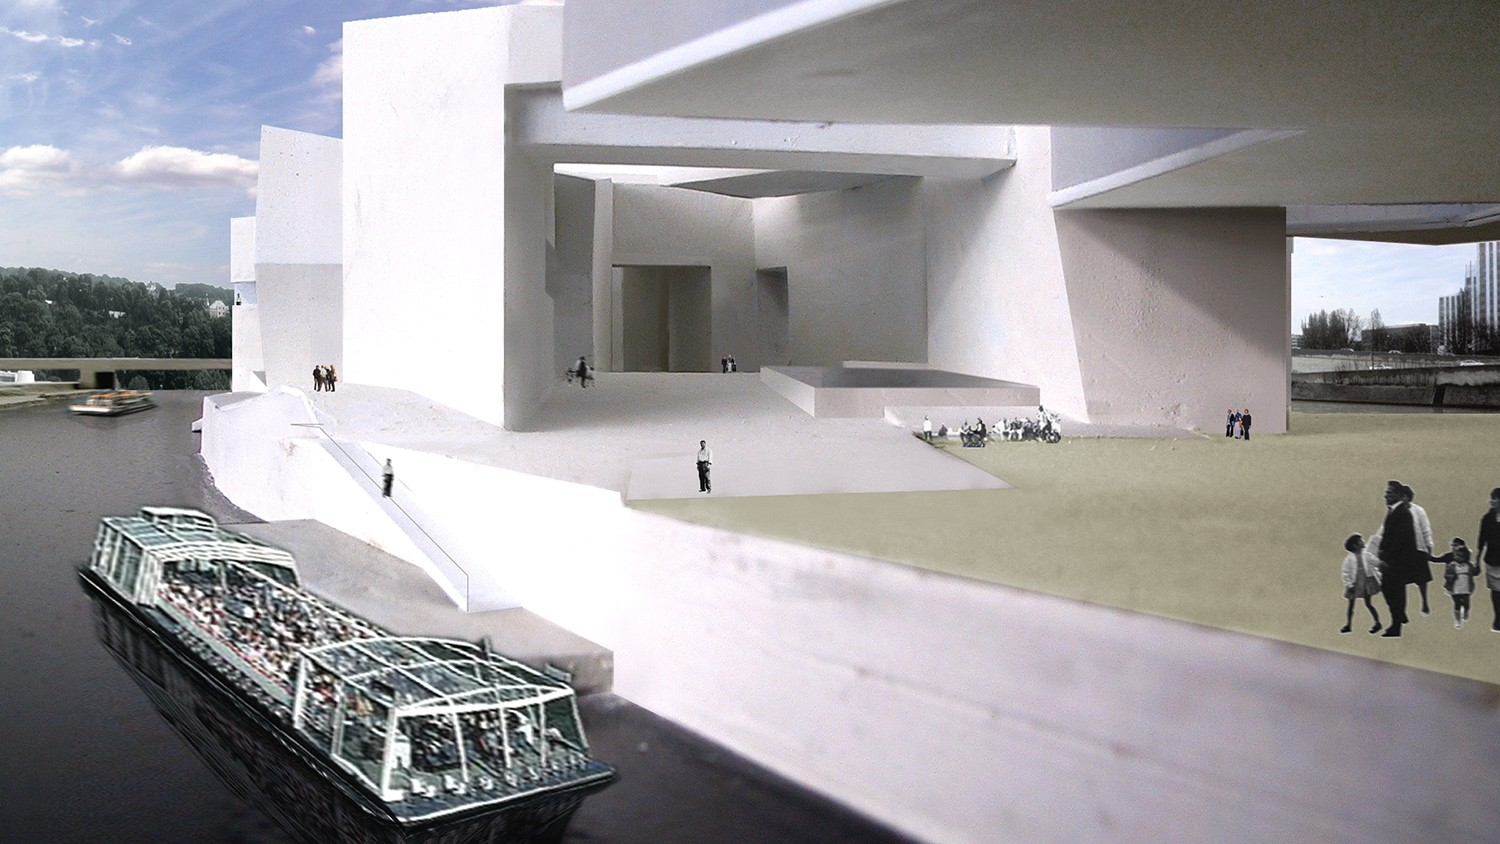 https://stevenholl.sfo2.digitaloceanspaces.com/uploads/projects/project-images/StevenHollArchitects_IleSeguin_BOATENTR_WH.jpg